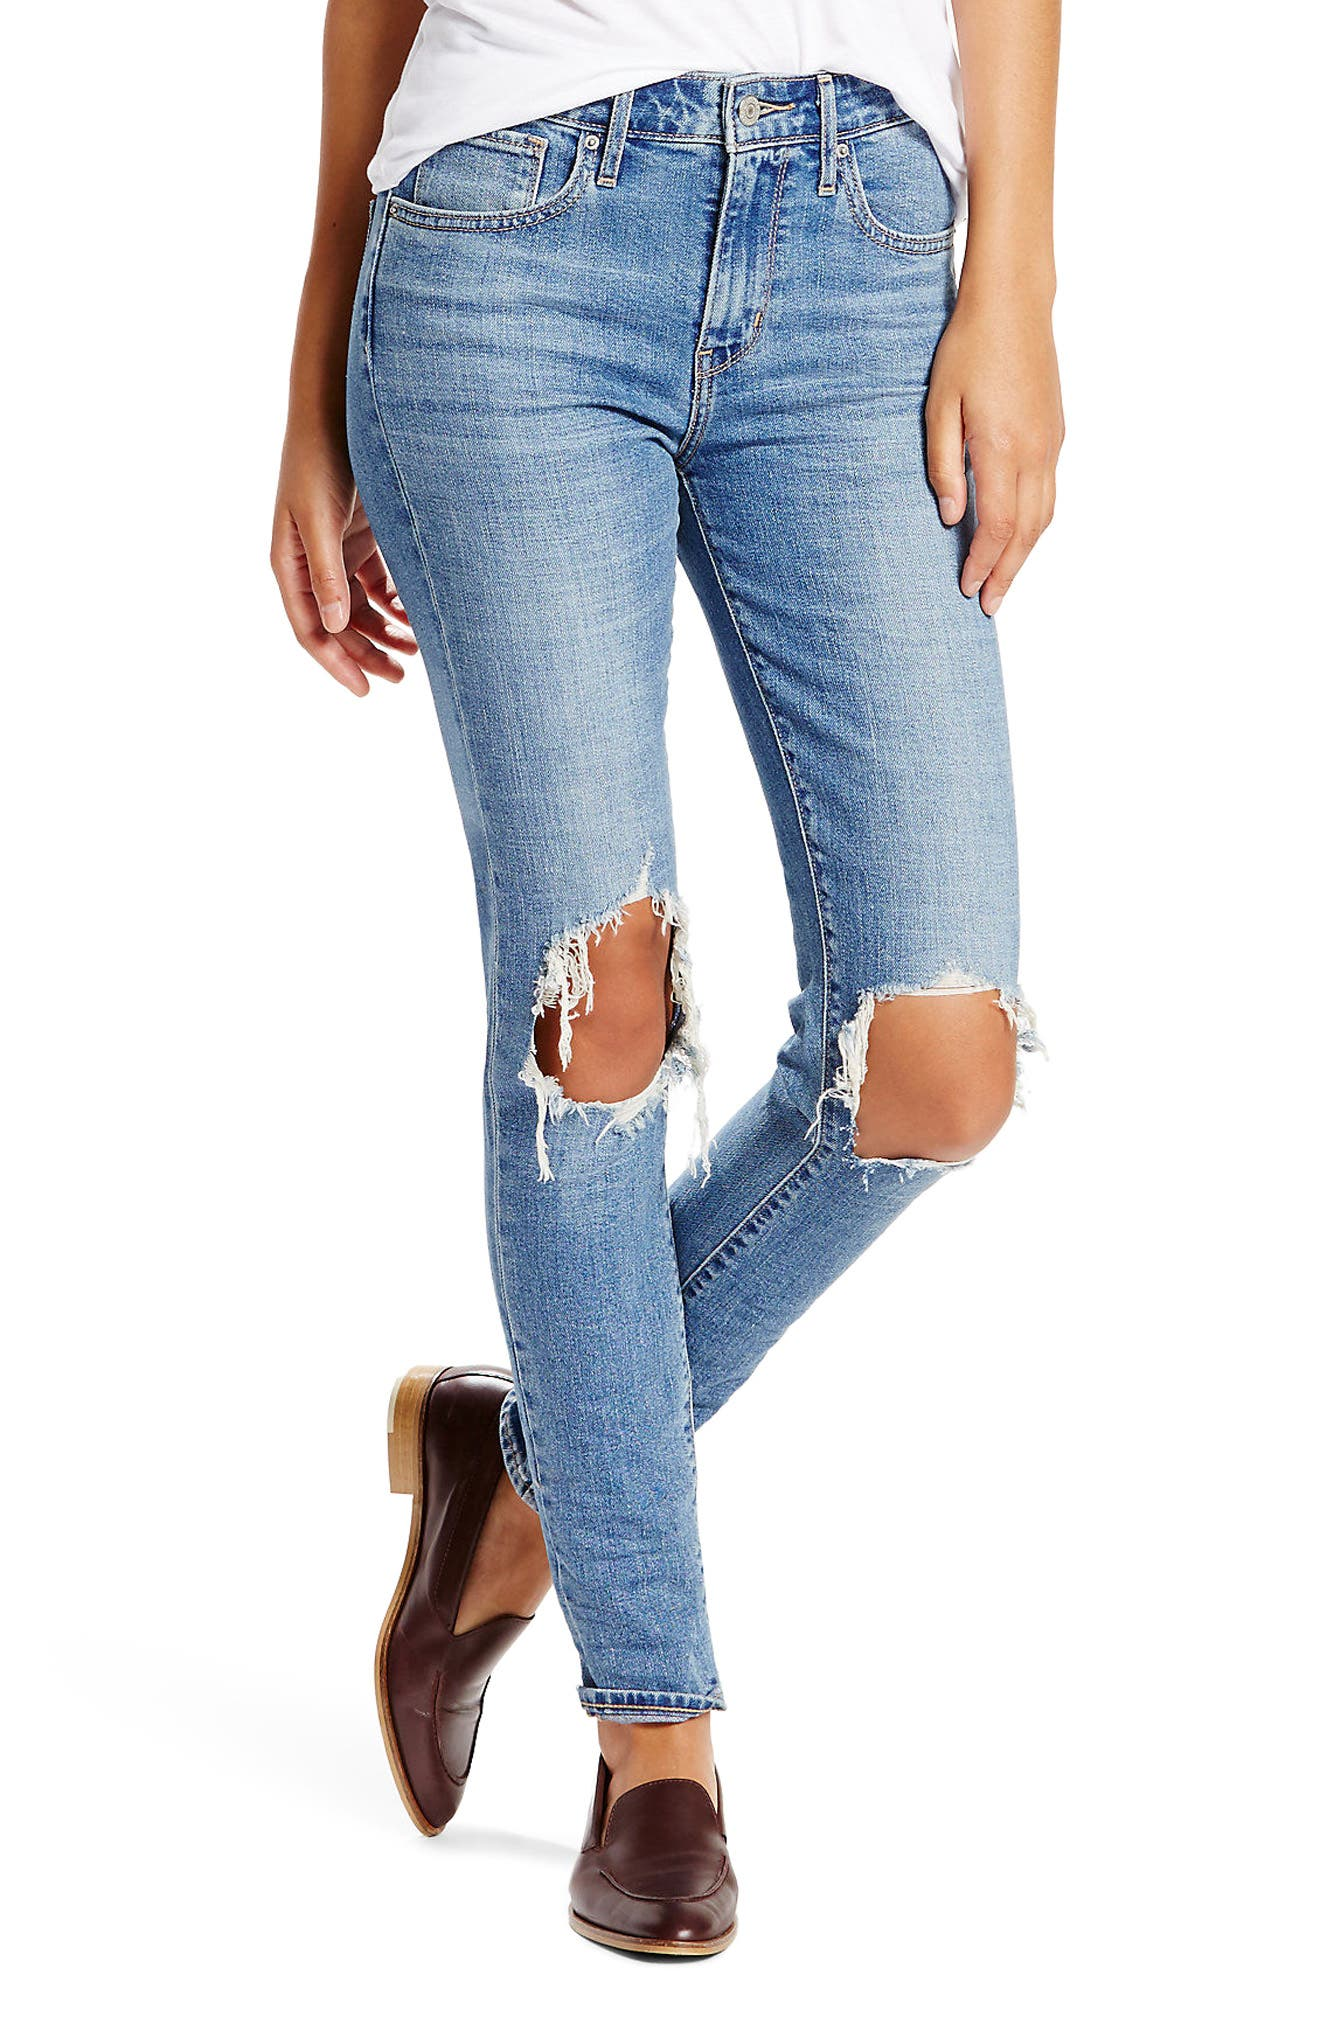 721 Ripped High Waist Skinny Jeans